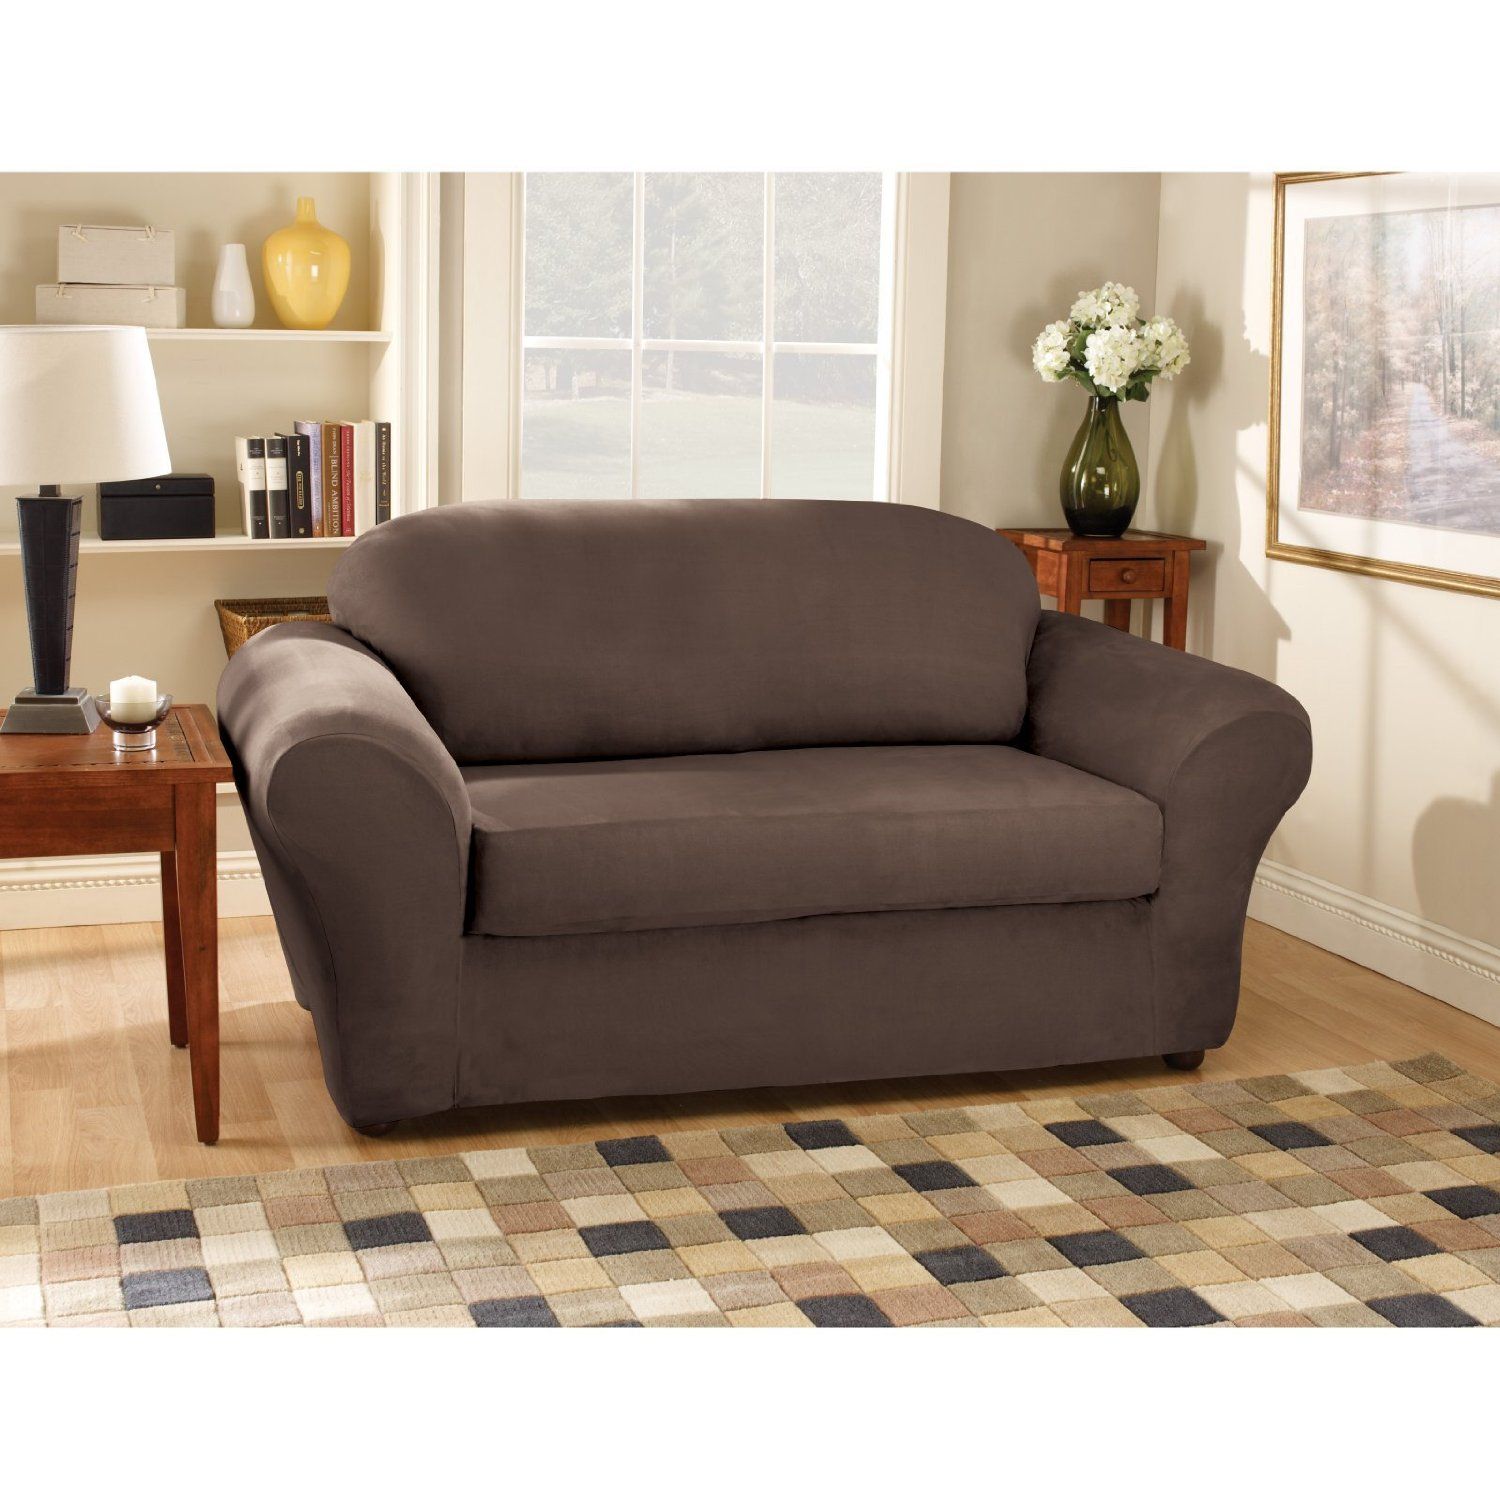 Sure Fit Logan Sofa Slipcover Children S Sofas And Chairs Discount Slip Covers Images Frompo 1